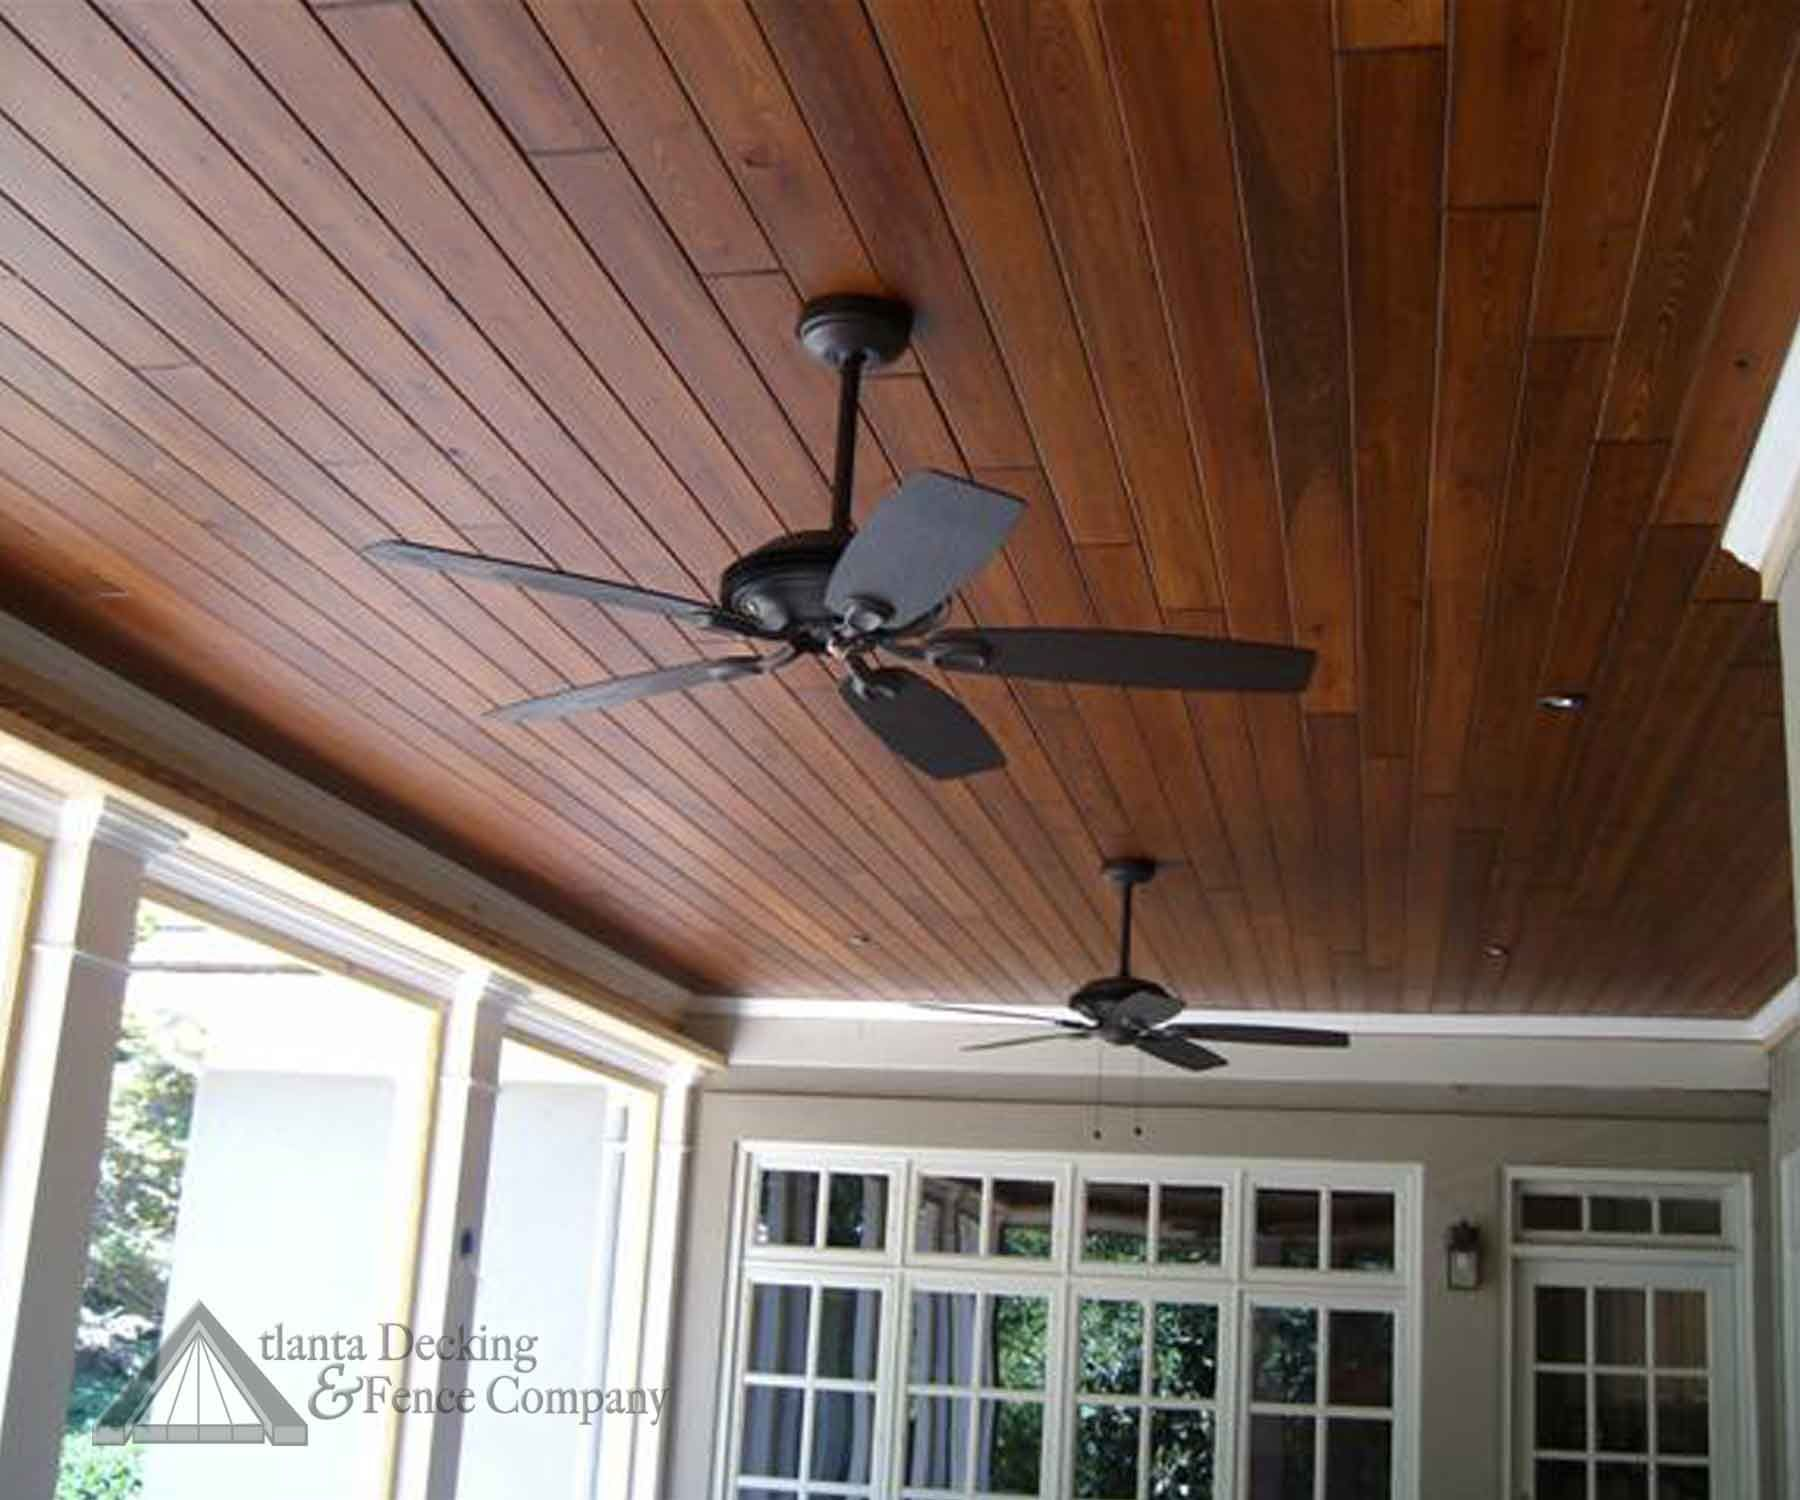 Painted Wood Ceilings Or Instead Of Painting Stain The Wood Ceiling On The Porch Dark